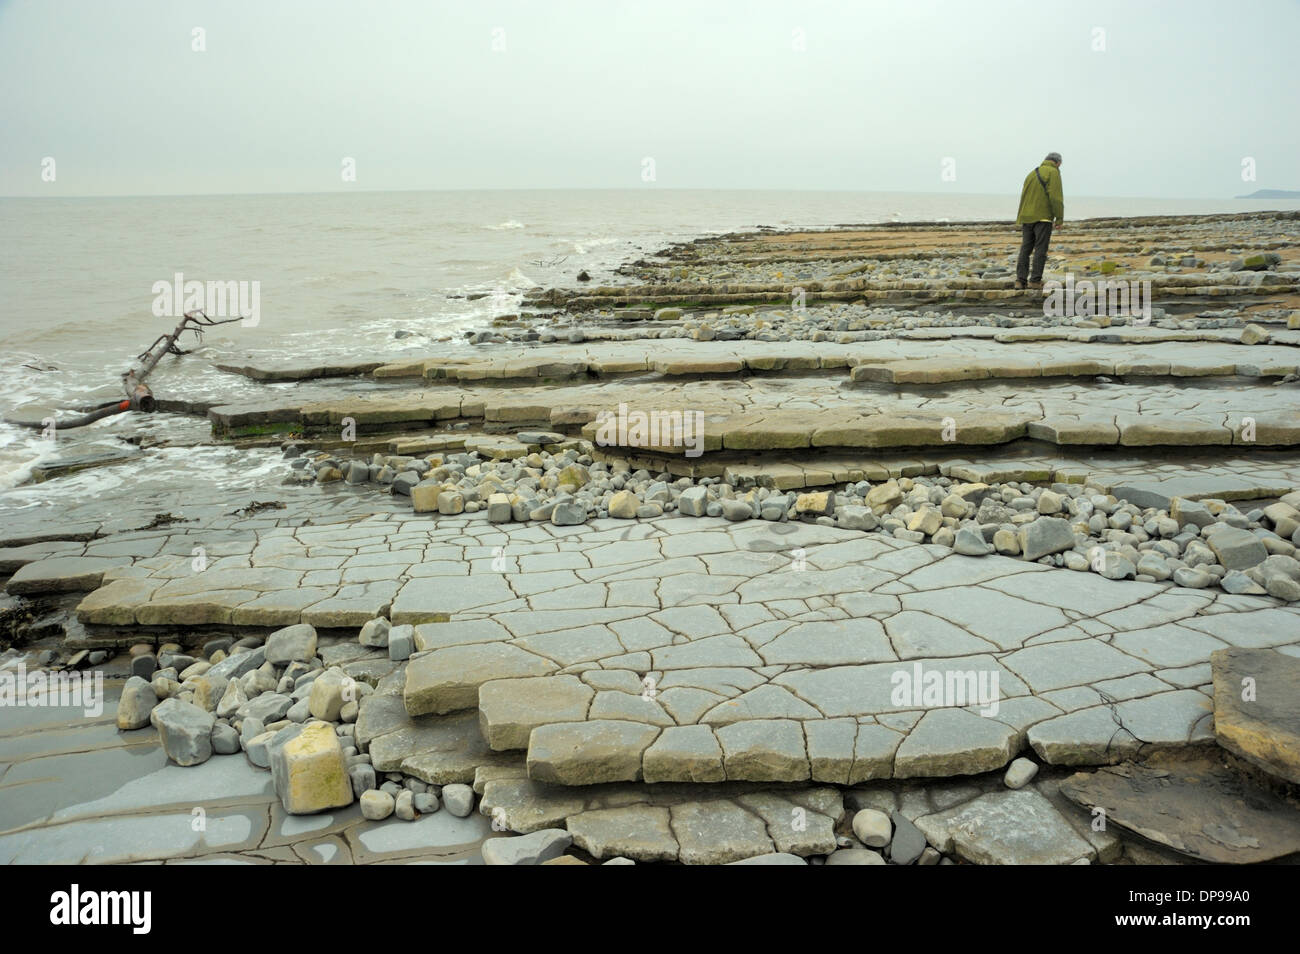 Remarkable Paving-like Strata at Lavernock Point - Stock Image